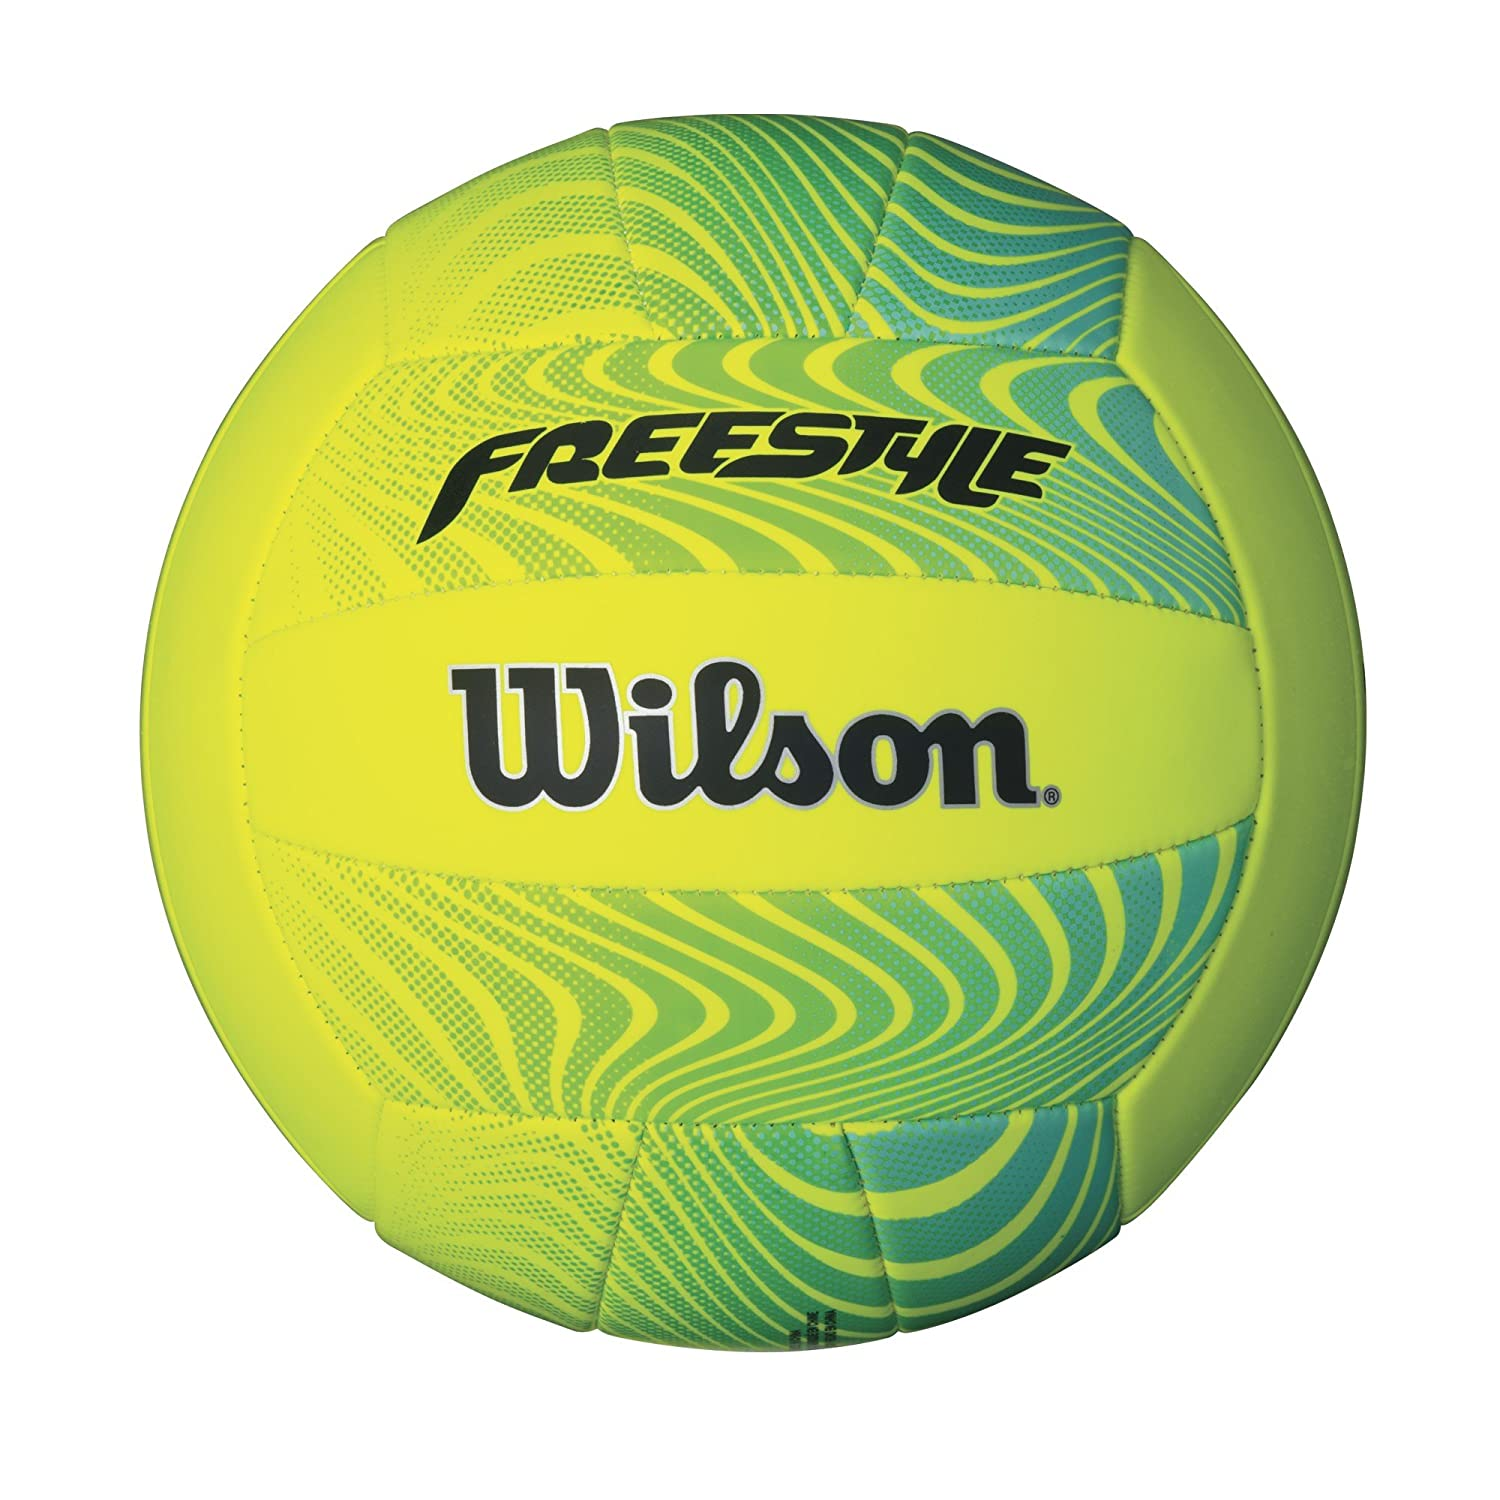 Wilson Freestyle Volleyball Wilson Sporting Goods - Team WTH3612ID